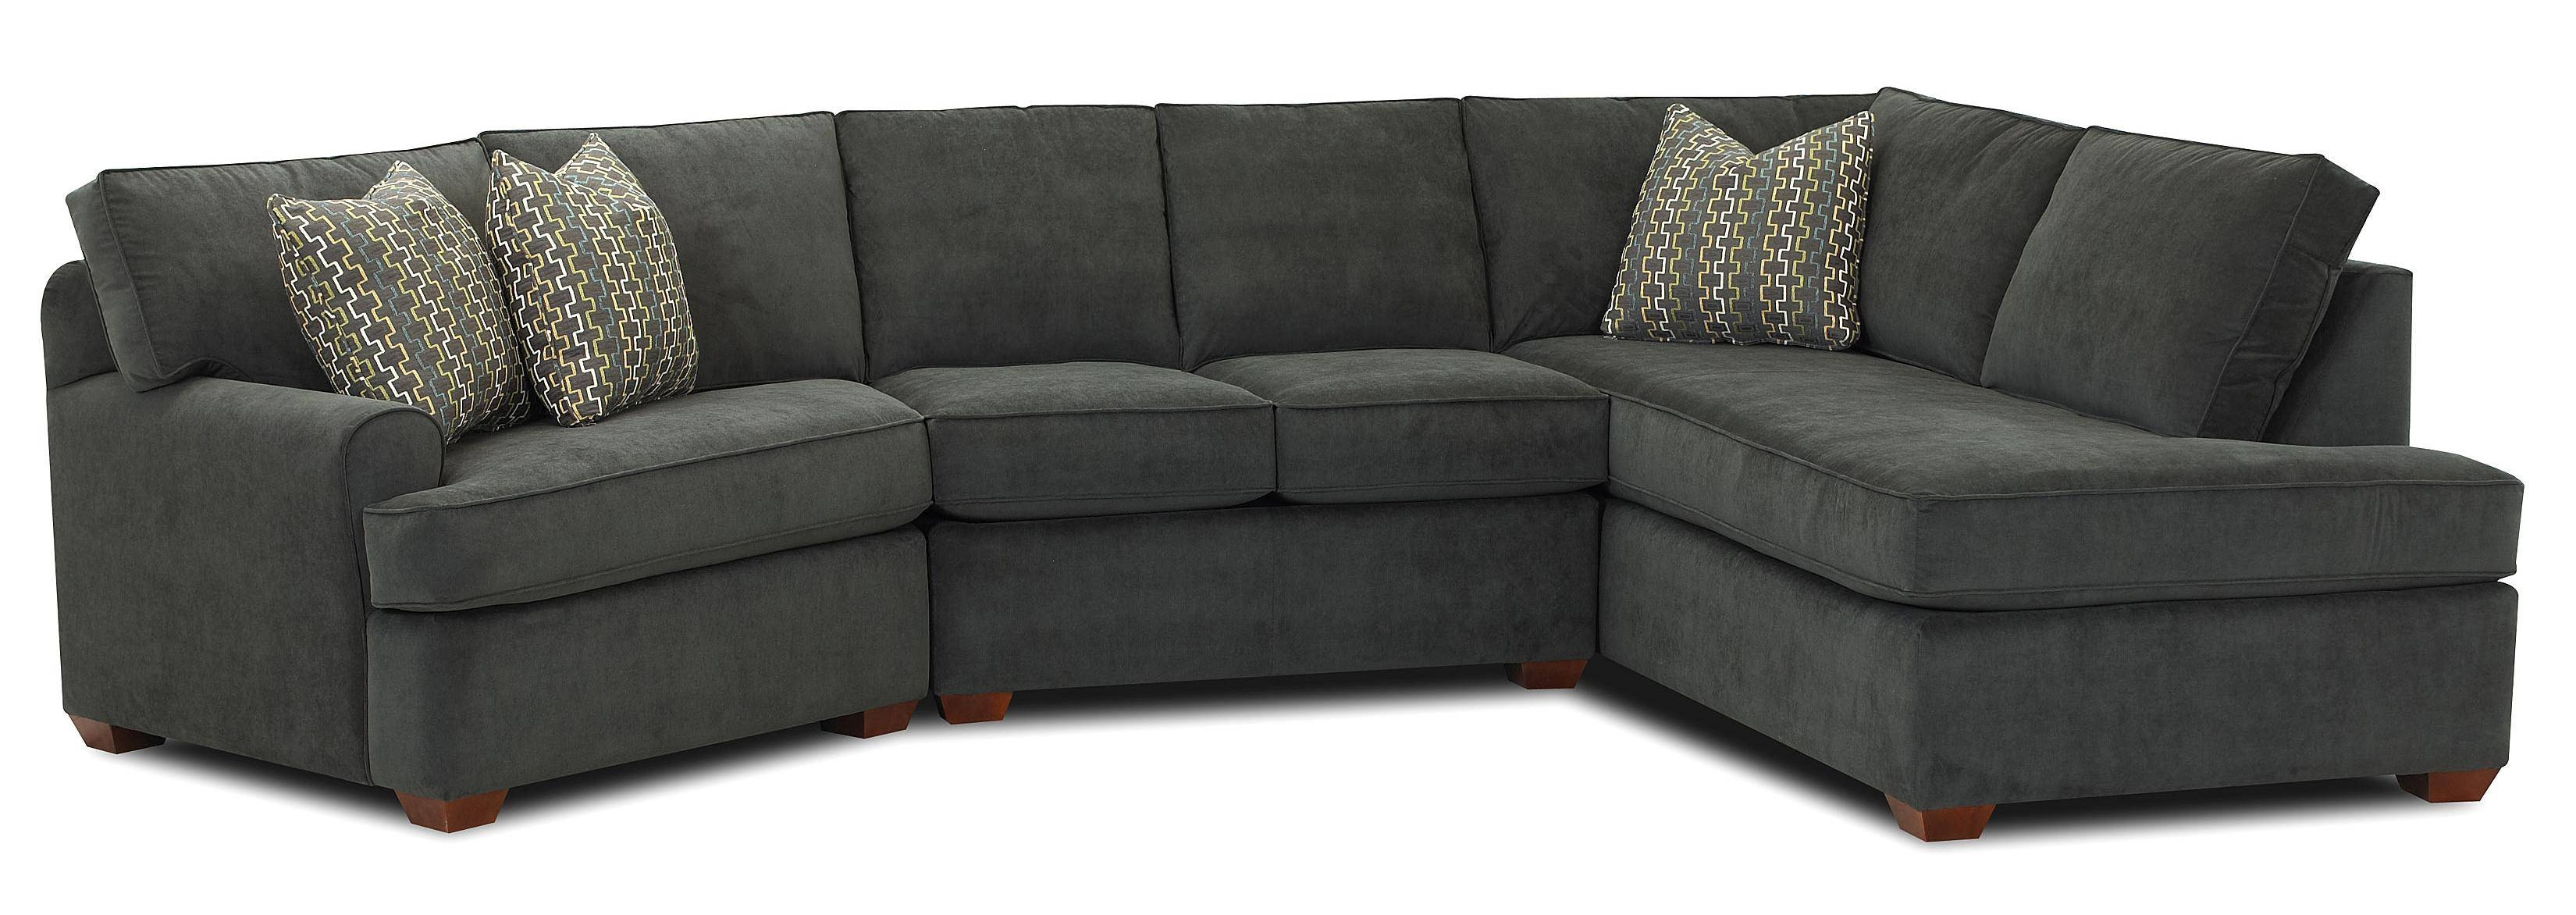 Klaussner Hybrid Sectional Sofa With Right-Facing Sofa Chaise in Chaise Sofas (Image 9 of 15)